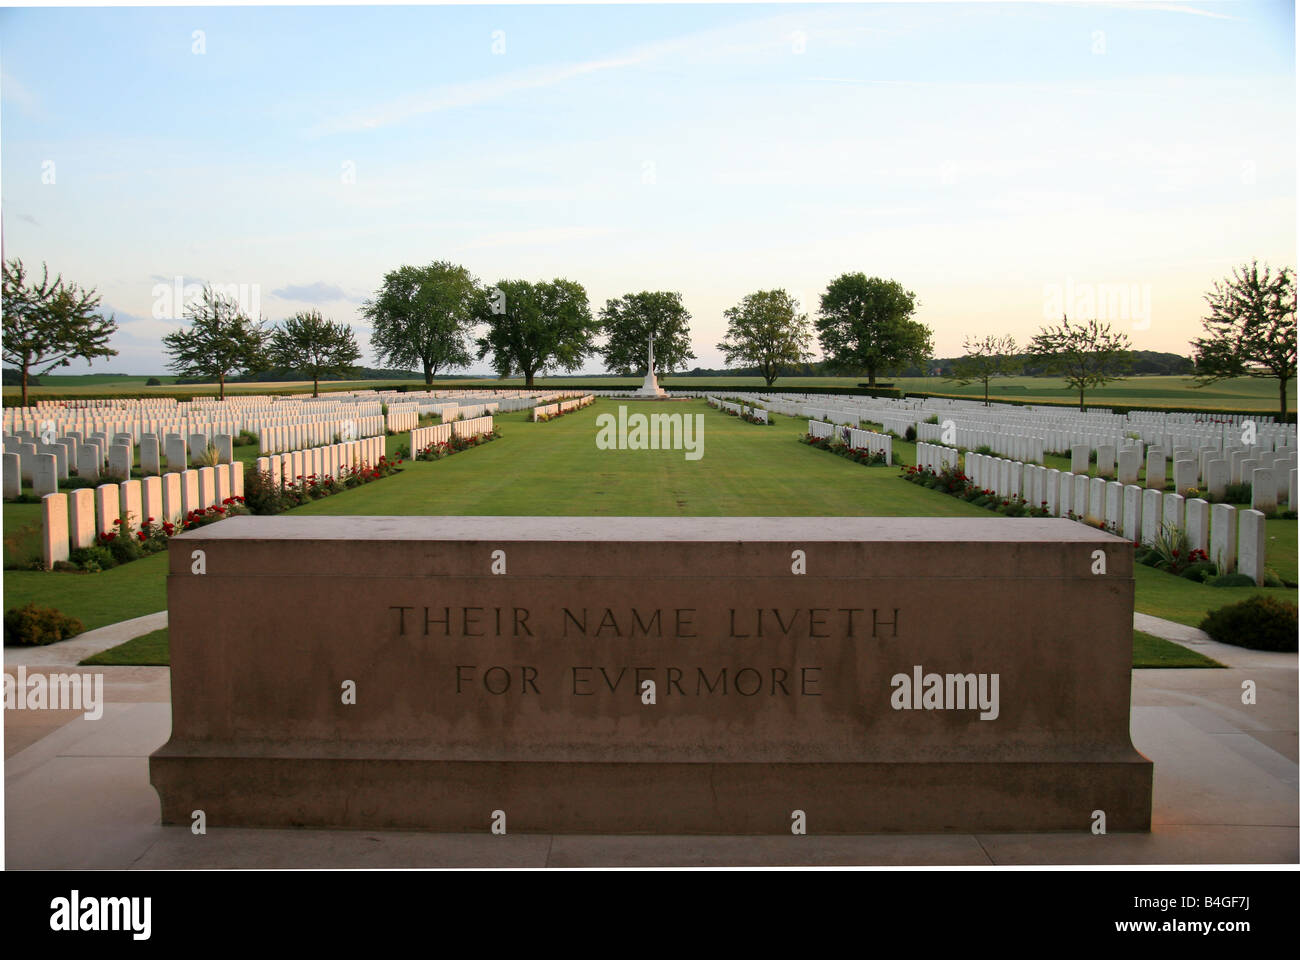 The Stone of Rememberance at the London Cemetery and Extension, High Wood, Longueval, France. - Stock Image